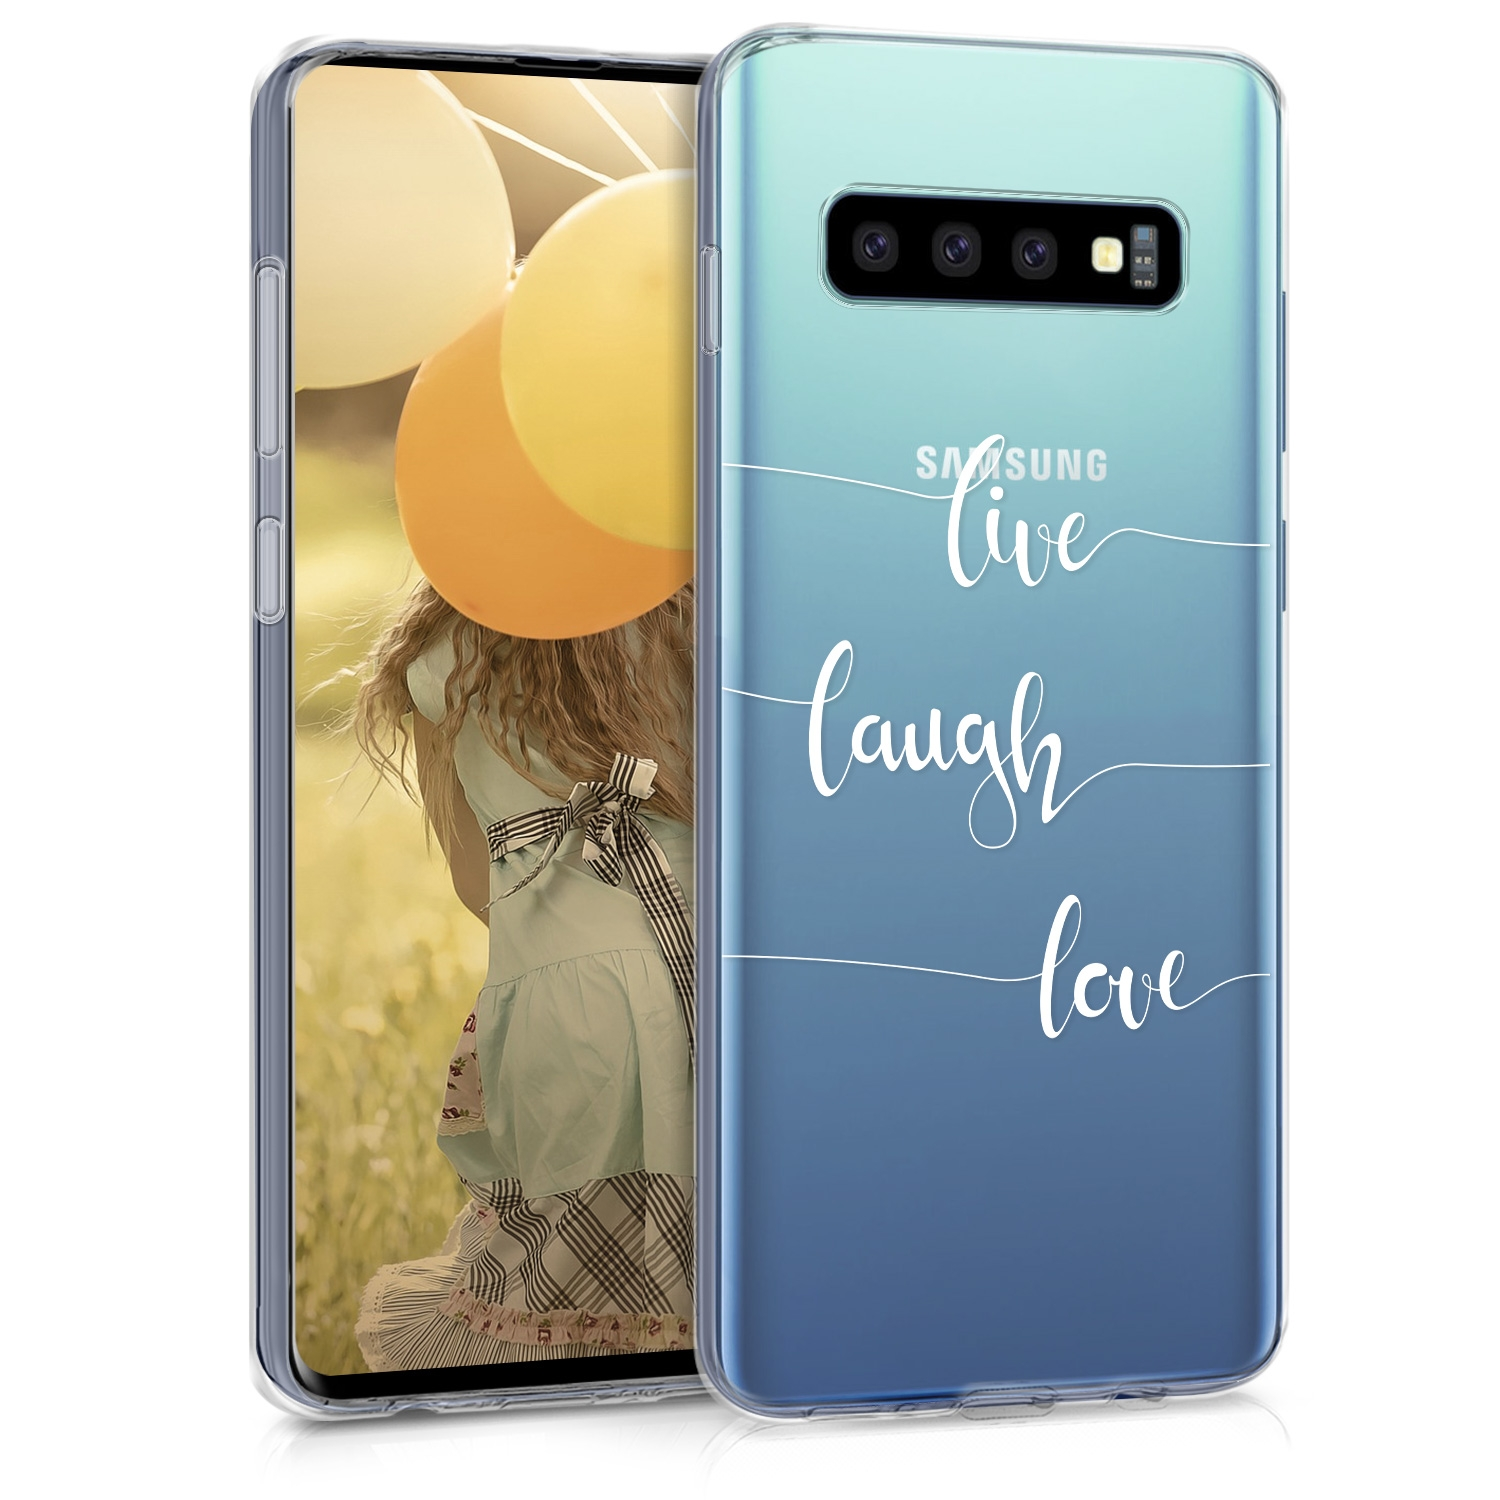 KW Θήκη Σιλικόνης Samsung Galaxy S10 - Live Laugh Love (47448.02)